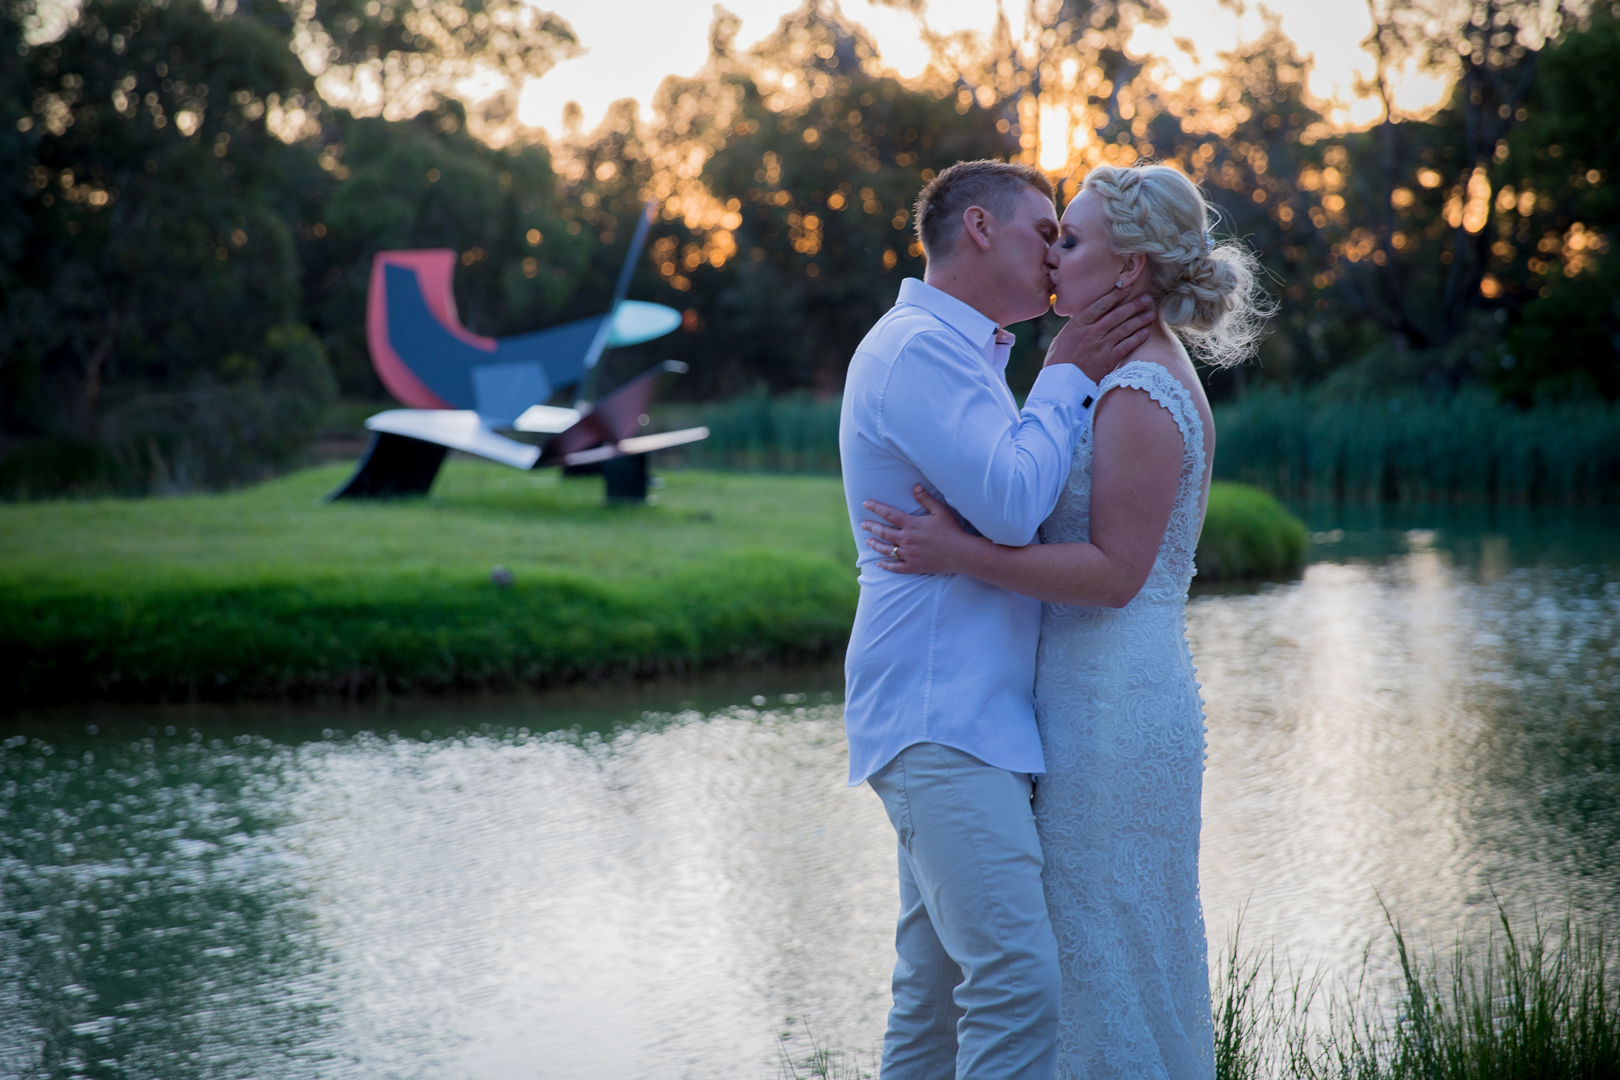 Sarah and Chris Wedding photography and cinematography Mornington Peninsula